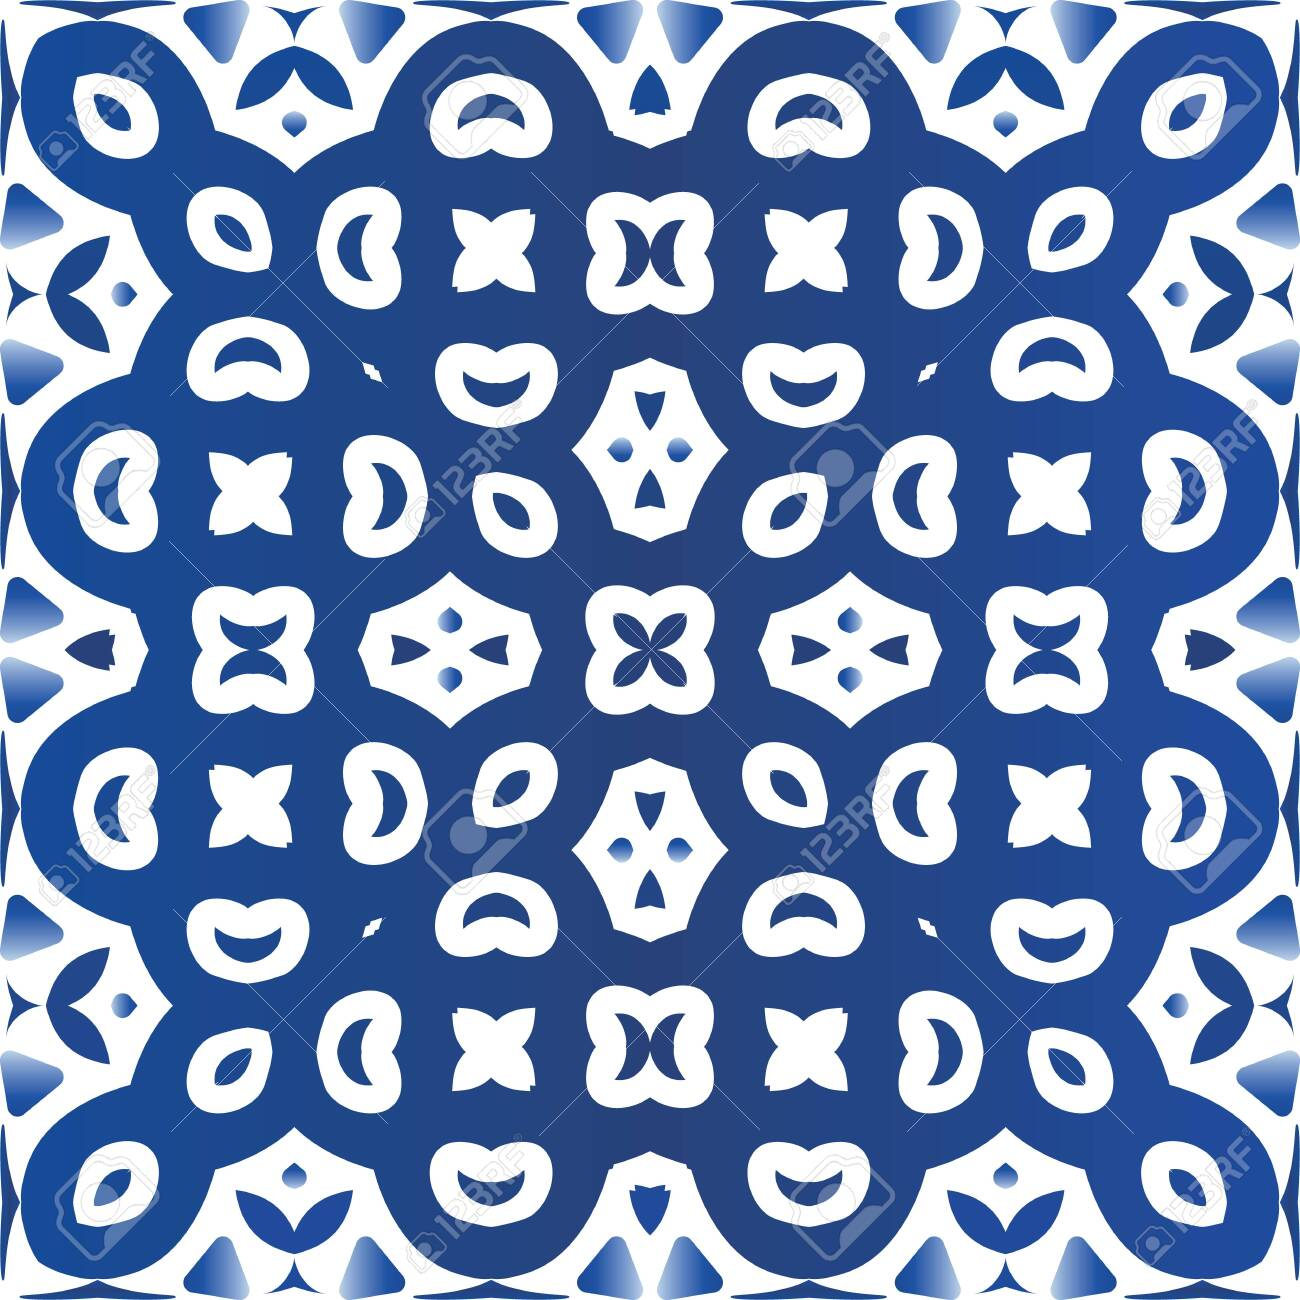 Decorative color ceramic azulejo tiles. Vector seamless pattern template. Fashionable design. Blue folk ethnic ornament for print, web background, surface texture, towels, pillows, wallpaper. - 145851047